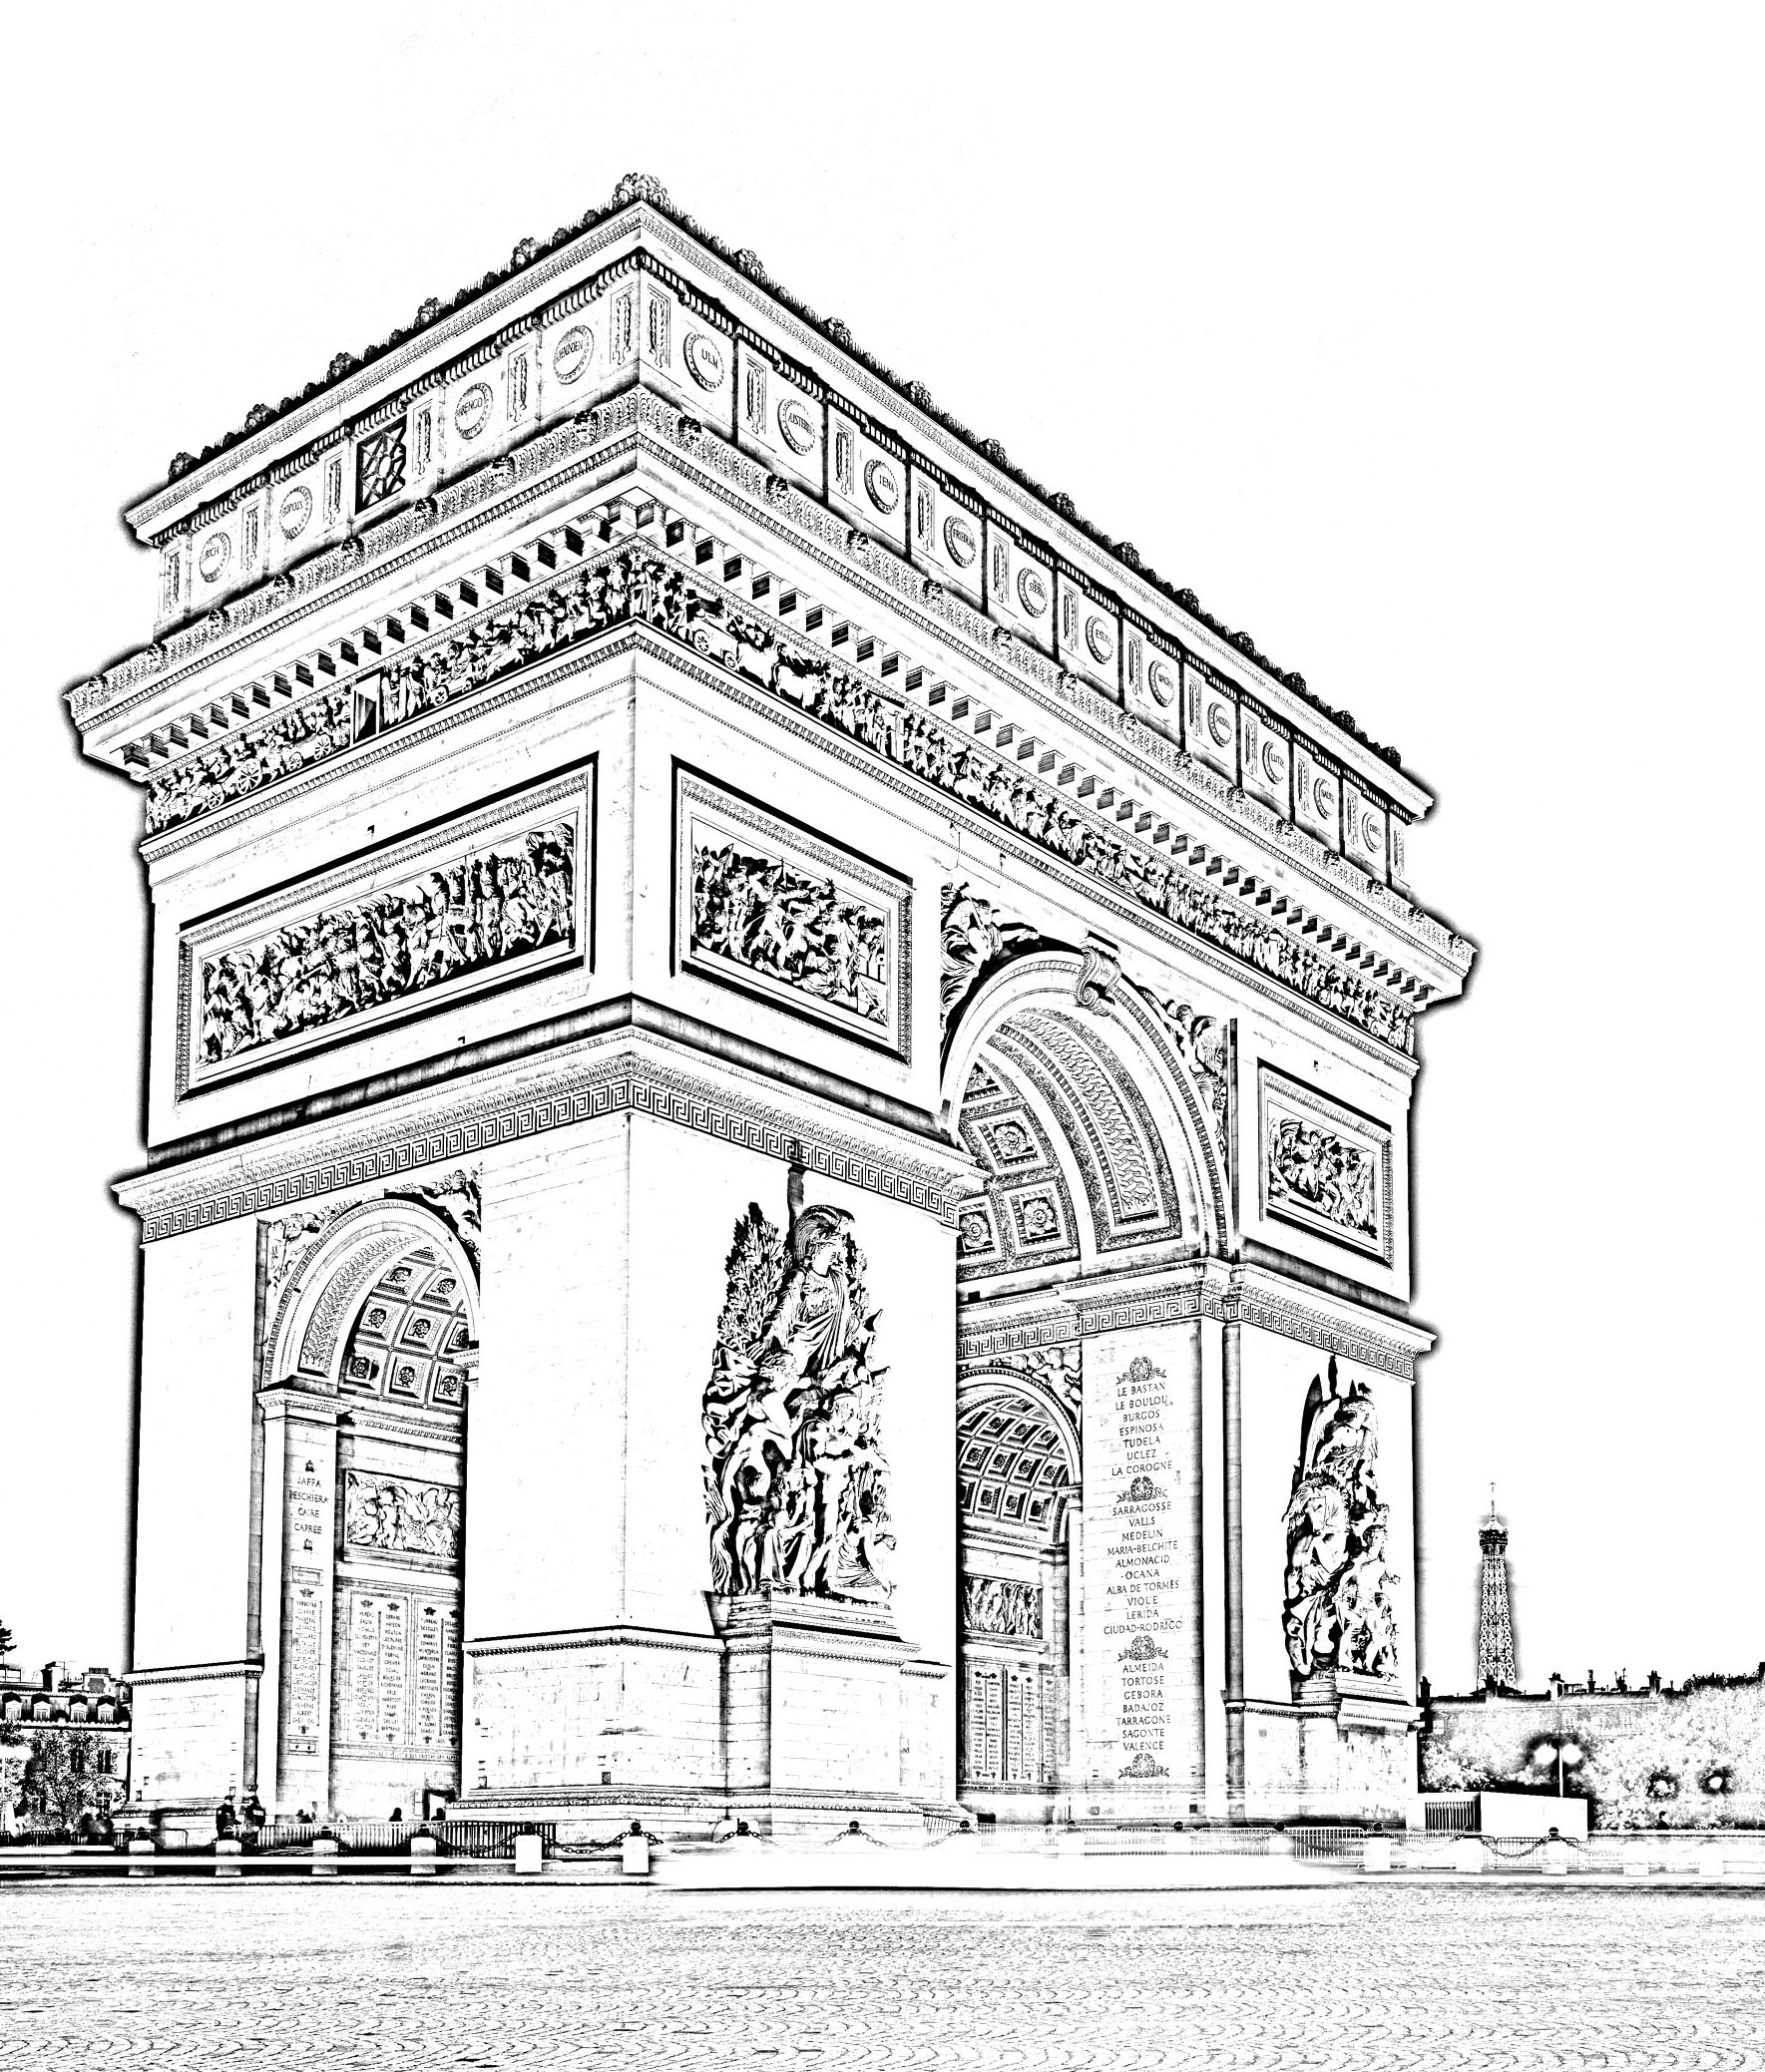 The Arc de Triomphe of Paris, capital of France, in High Definition and in black & white